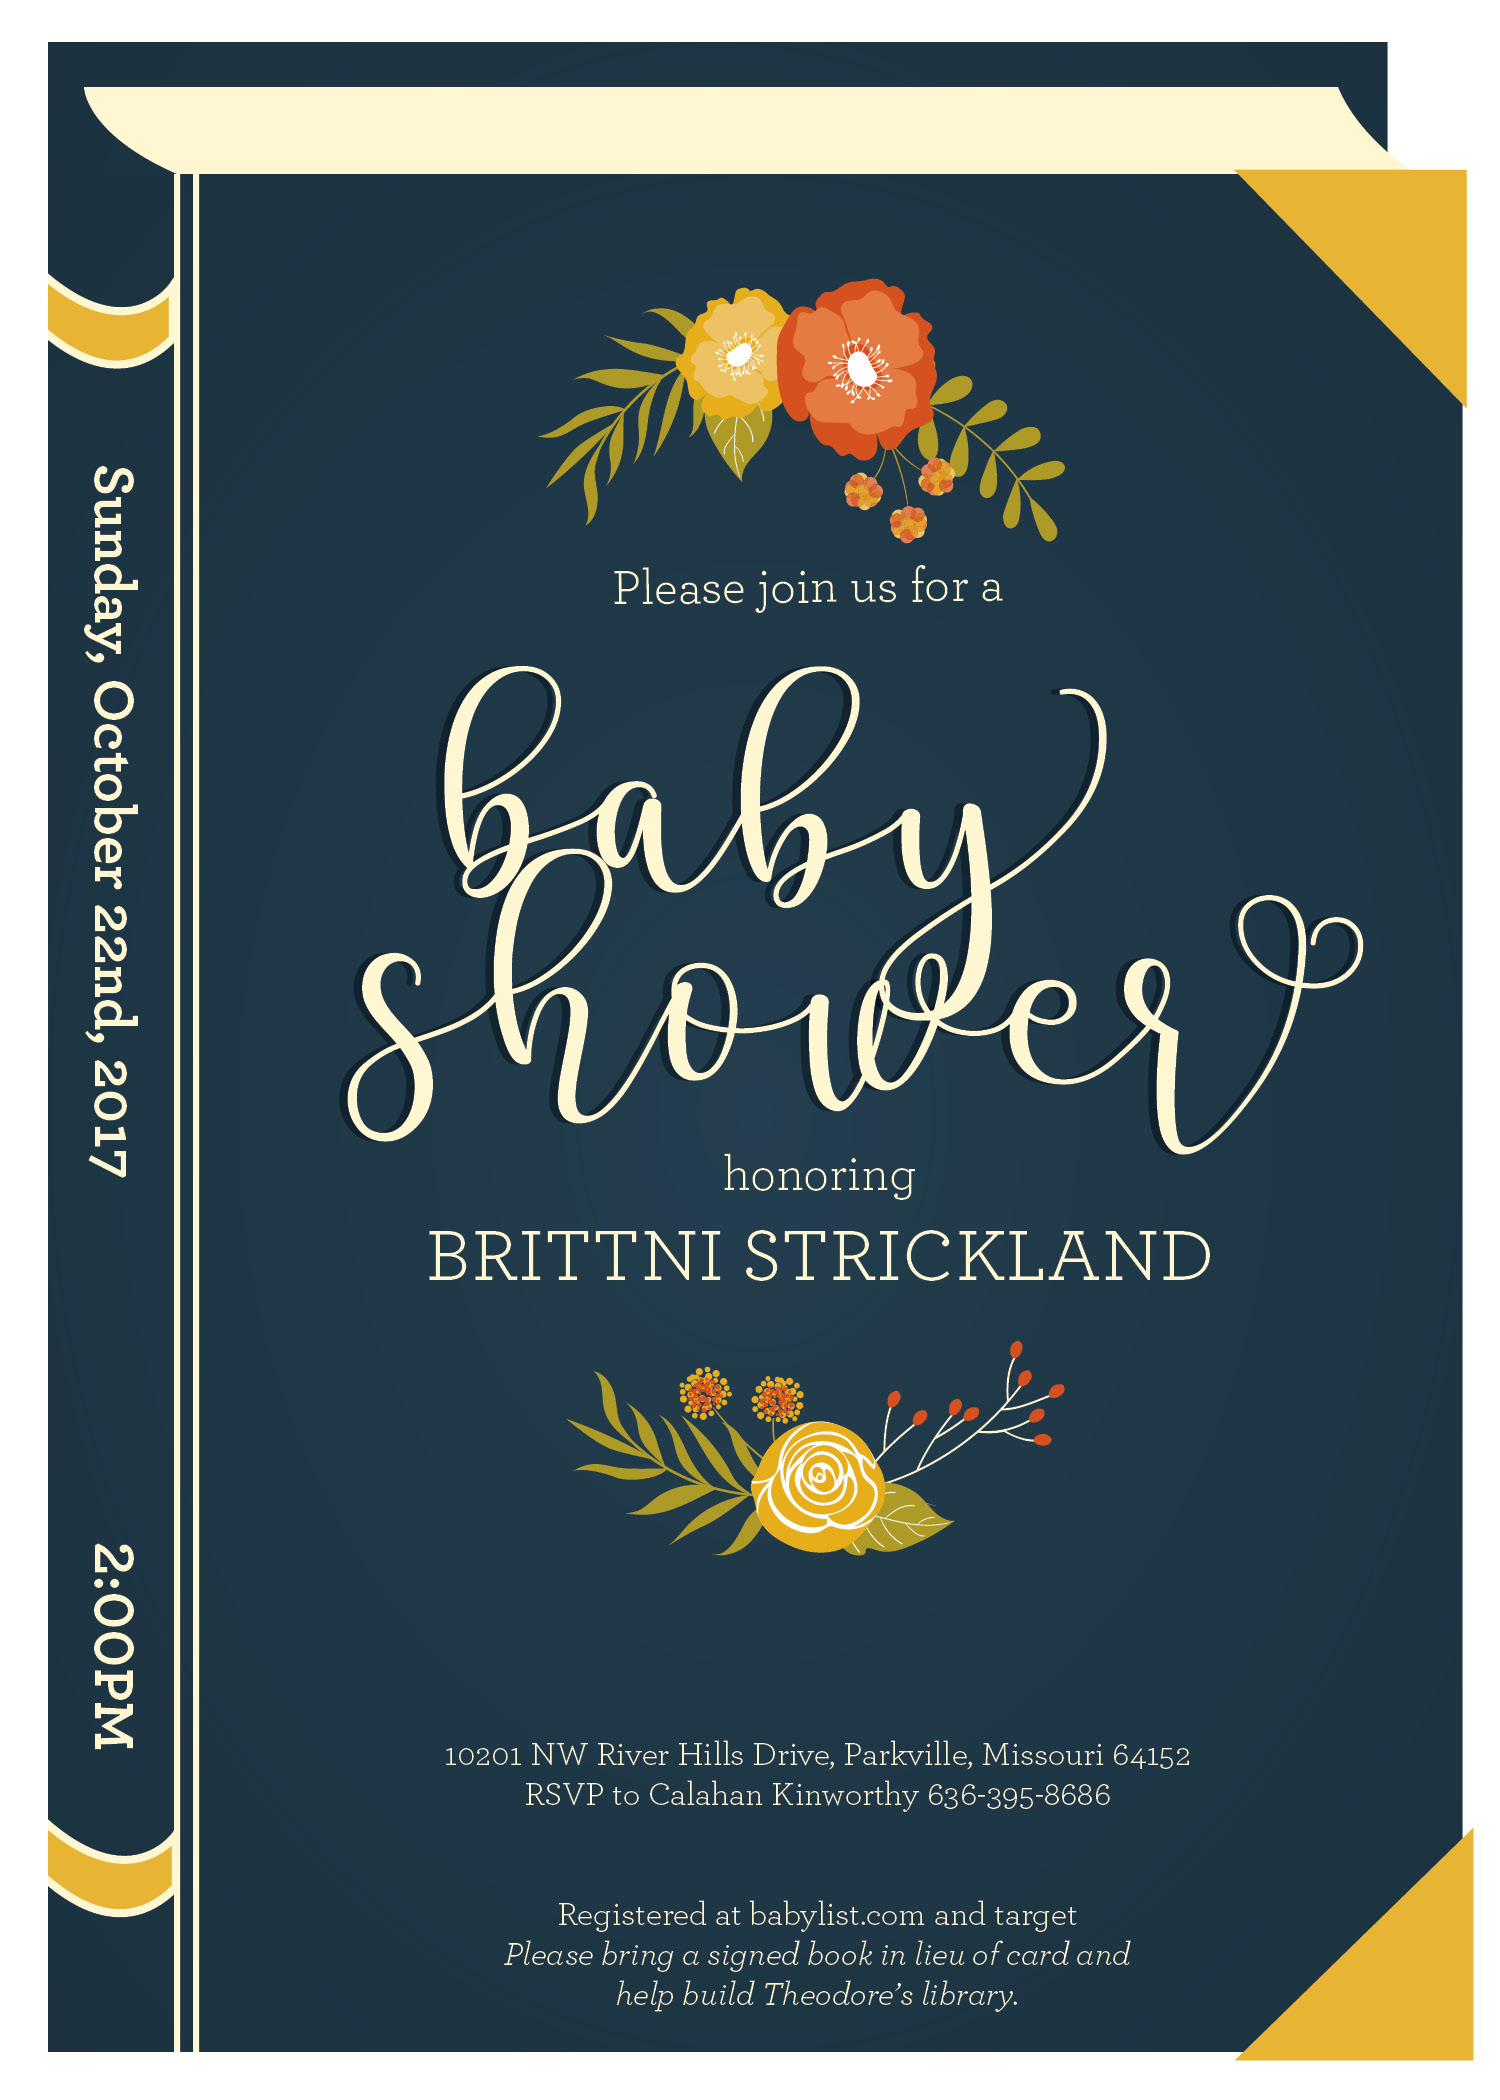 Book Baby Shower Invitations 1 | SJROBERTSDESIGN